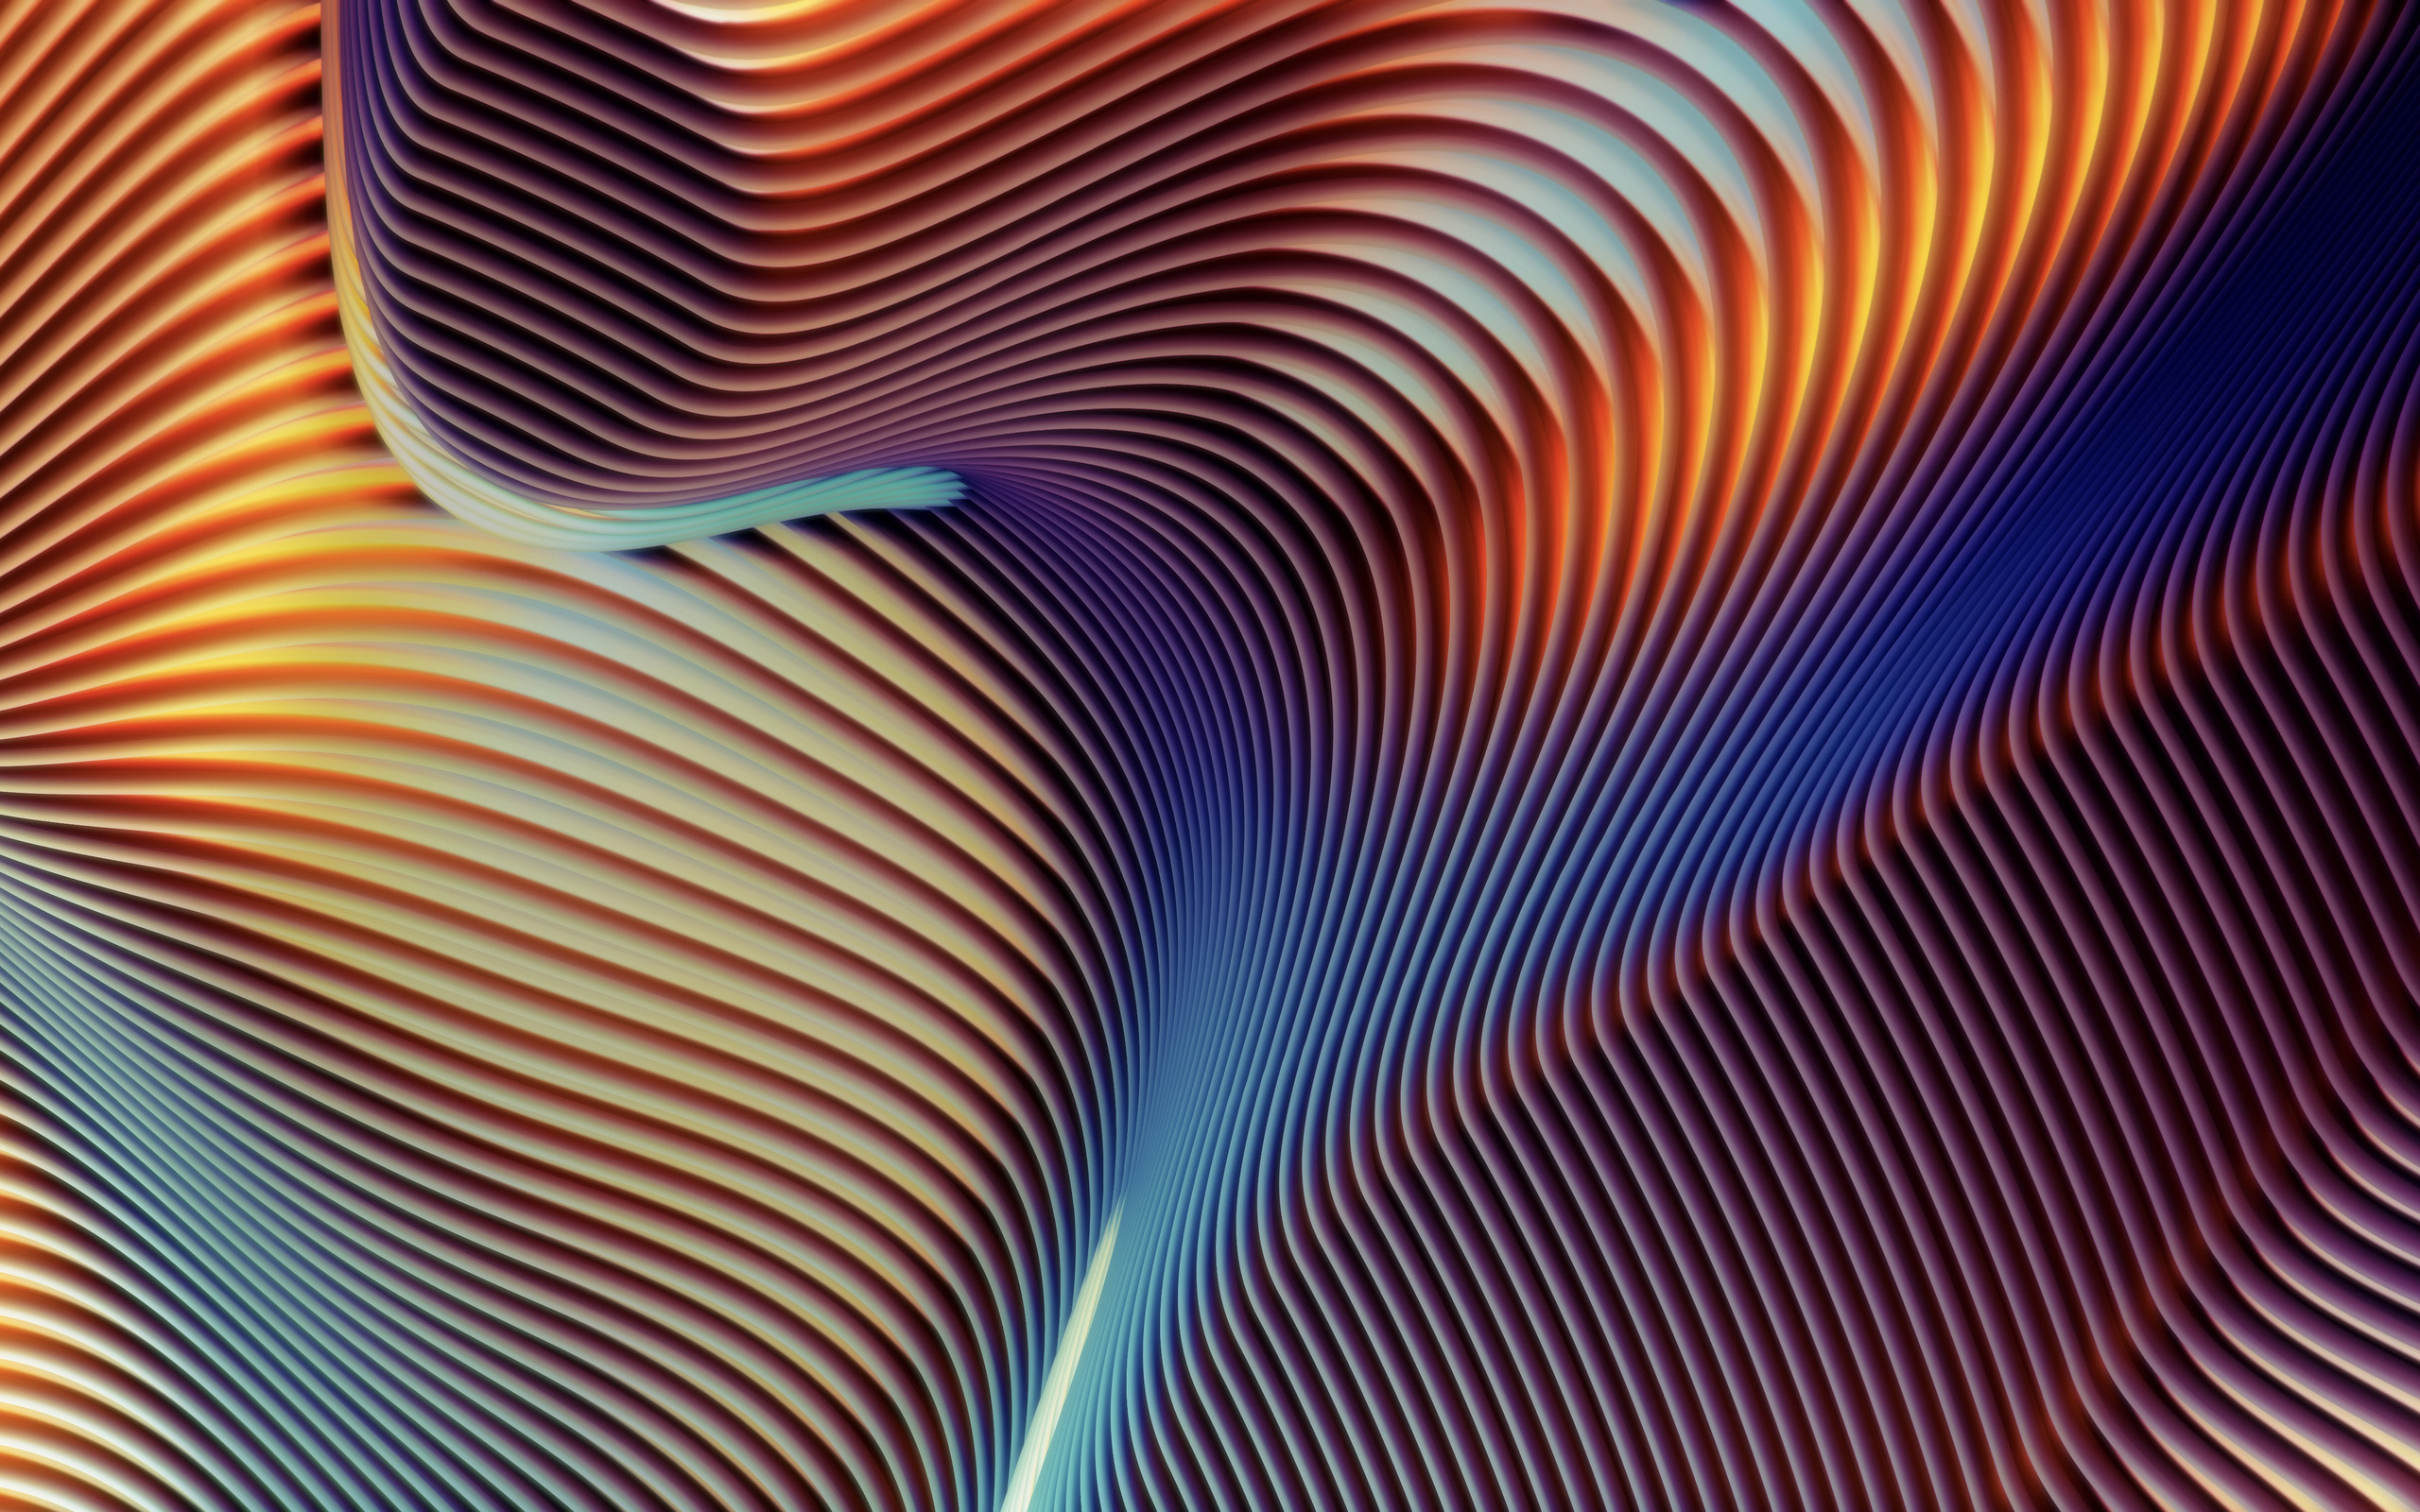 2560x1600 5k abstract shapes retina display 2560x1600 resolution hd